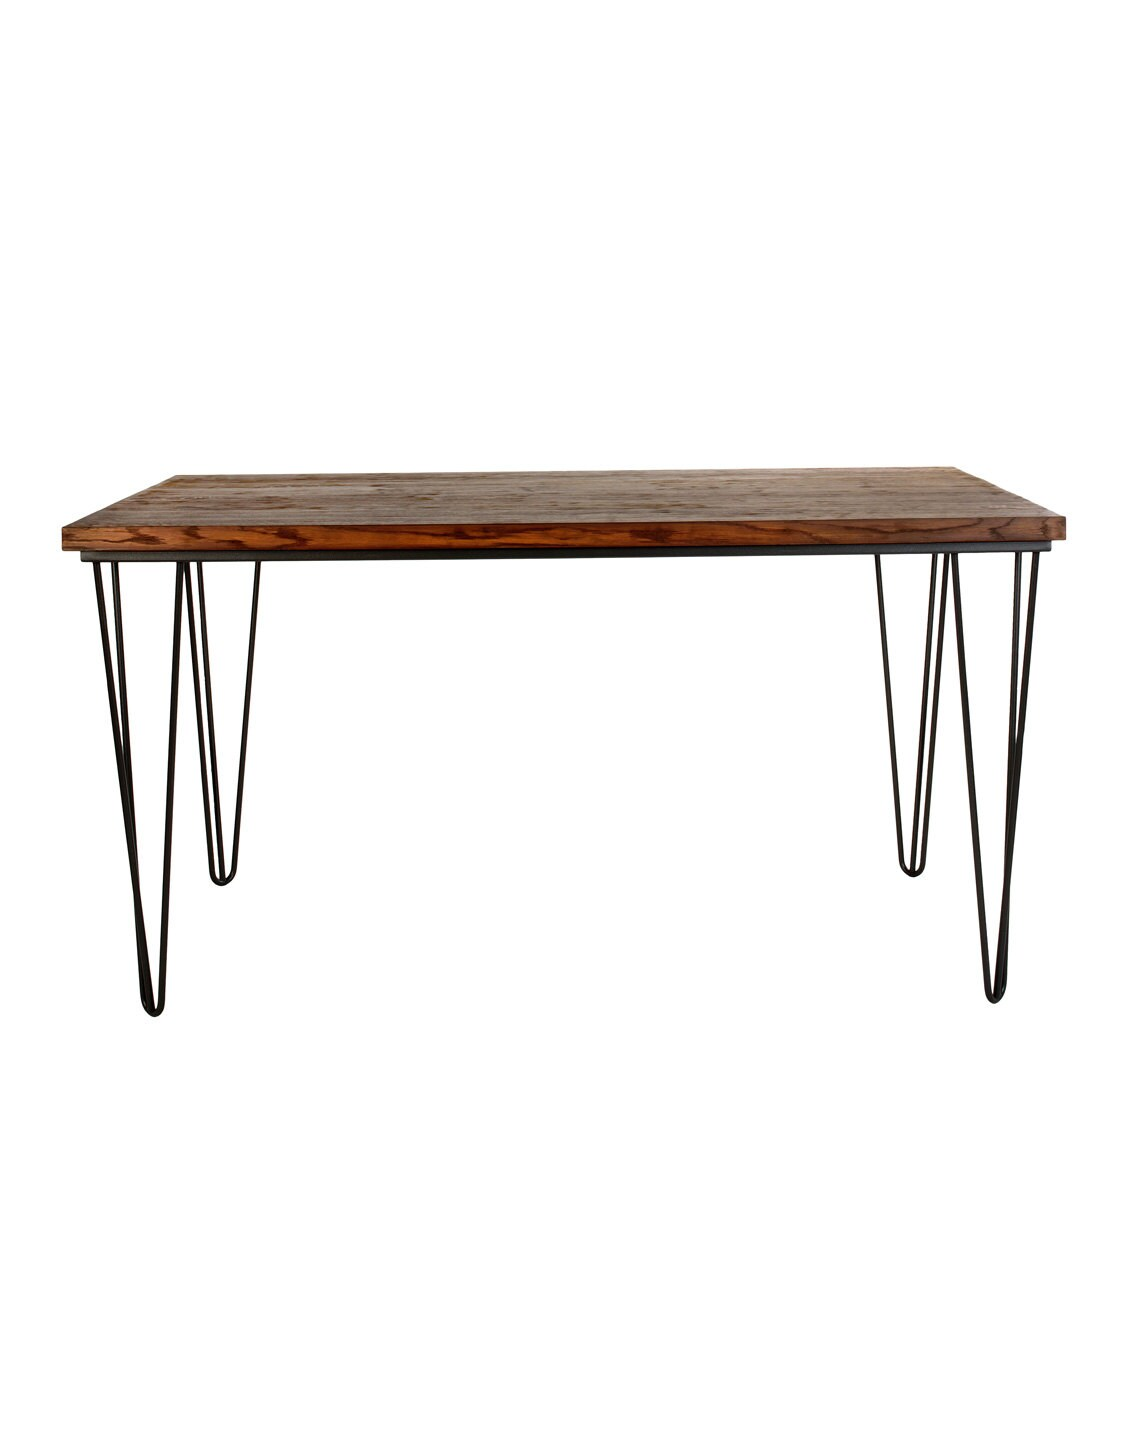 Small Coffee Table With Industrial Steel Base And Oak Wood